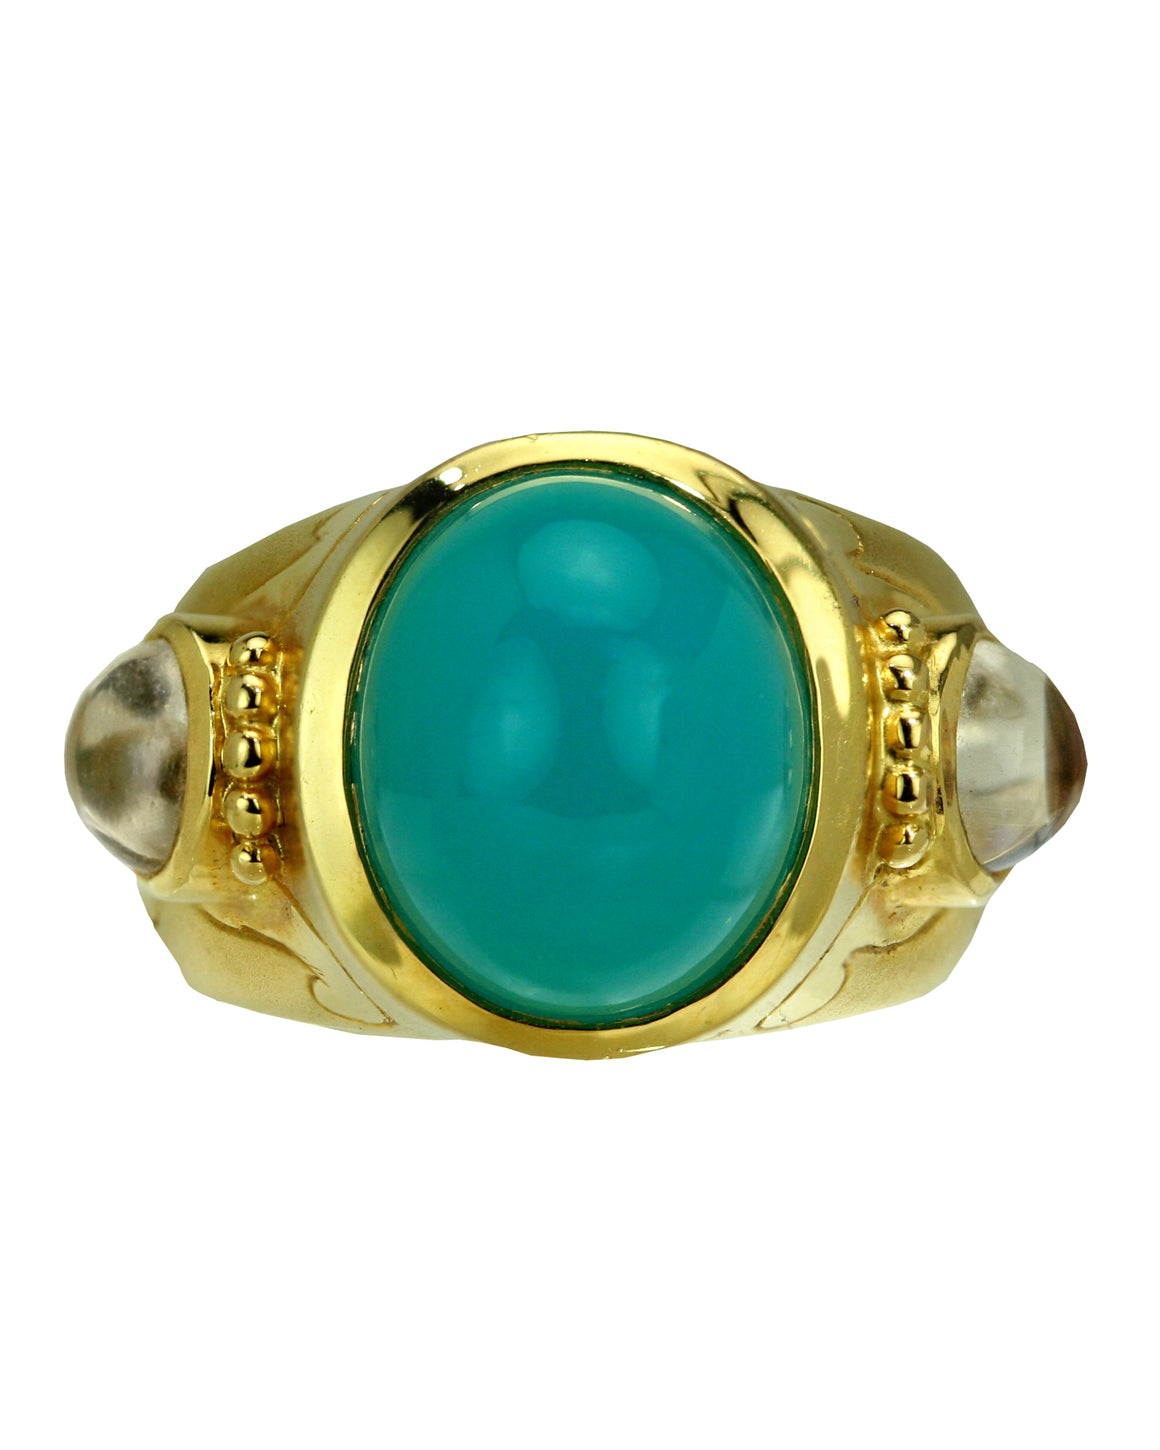 Crevoshay 18k Yellow Gold Cabochon Chrysocolla Ring by Paula Crevoshay - Talisman Collection Fine Jewelers